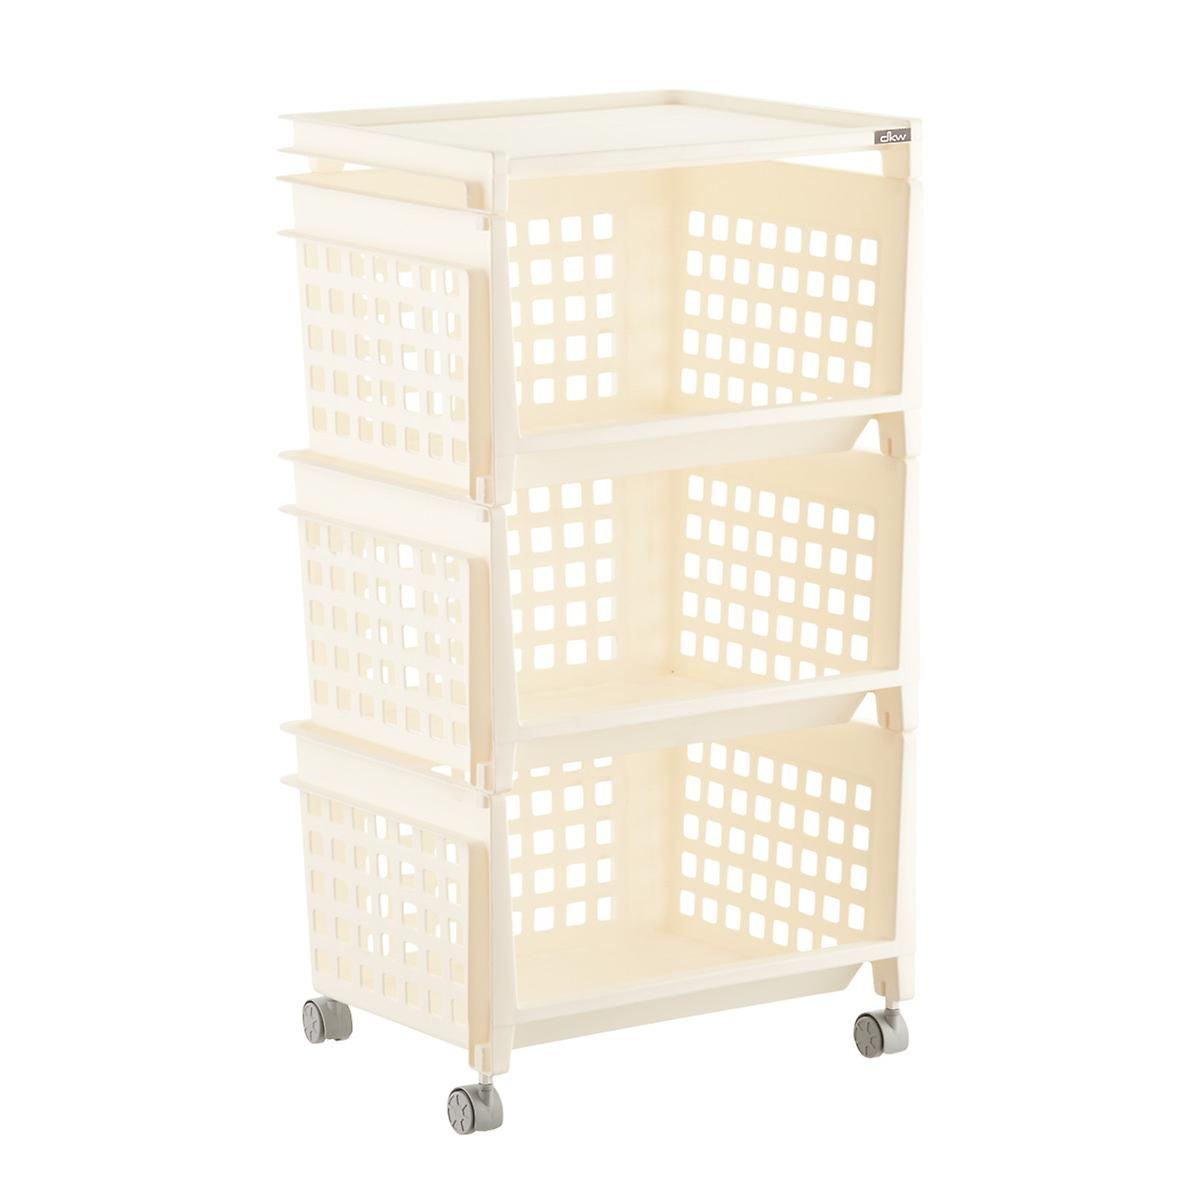 Cream 3-Tier Plastic Storage Bin with Wheels | The ...